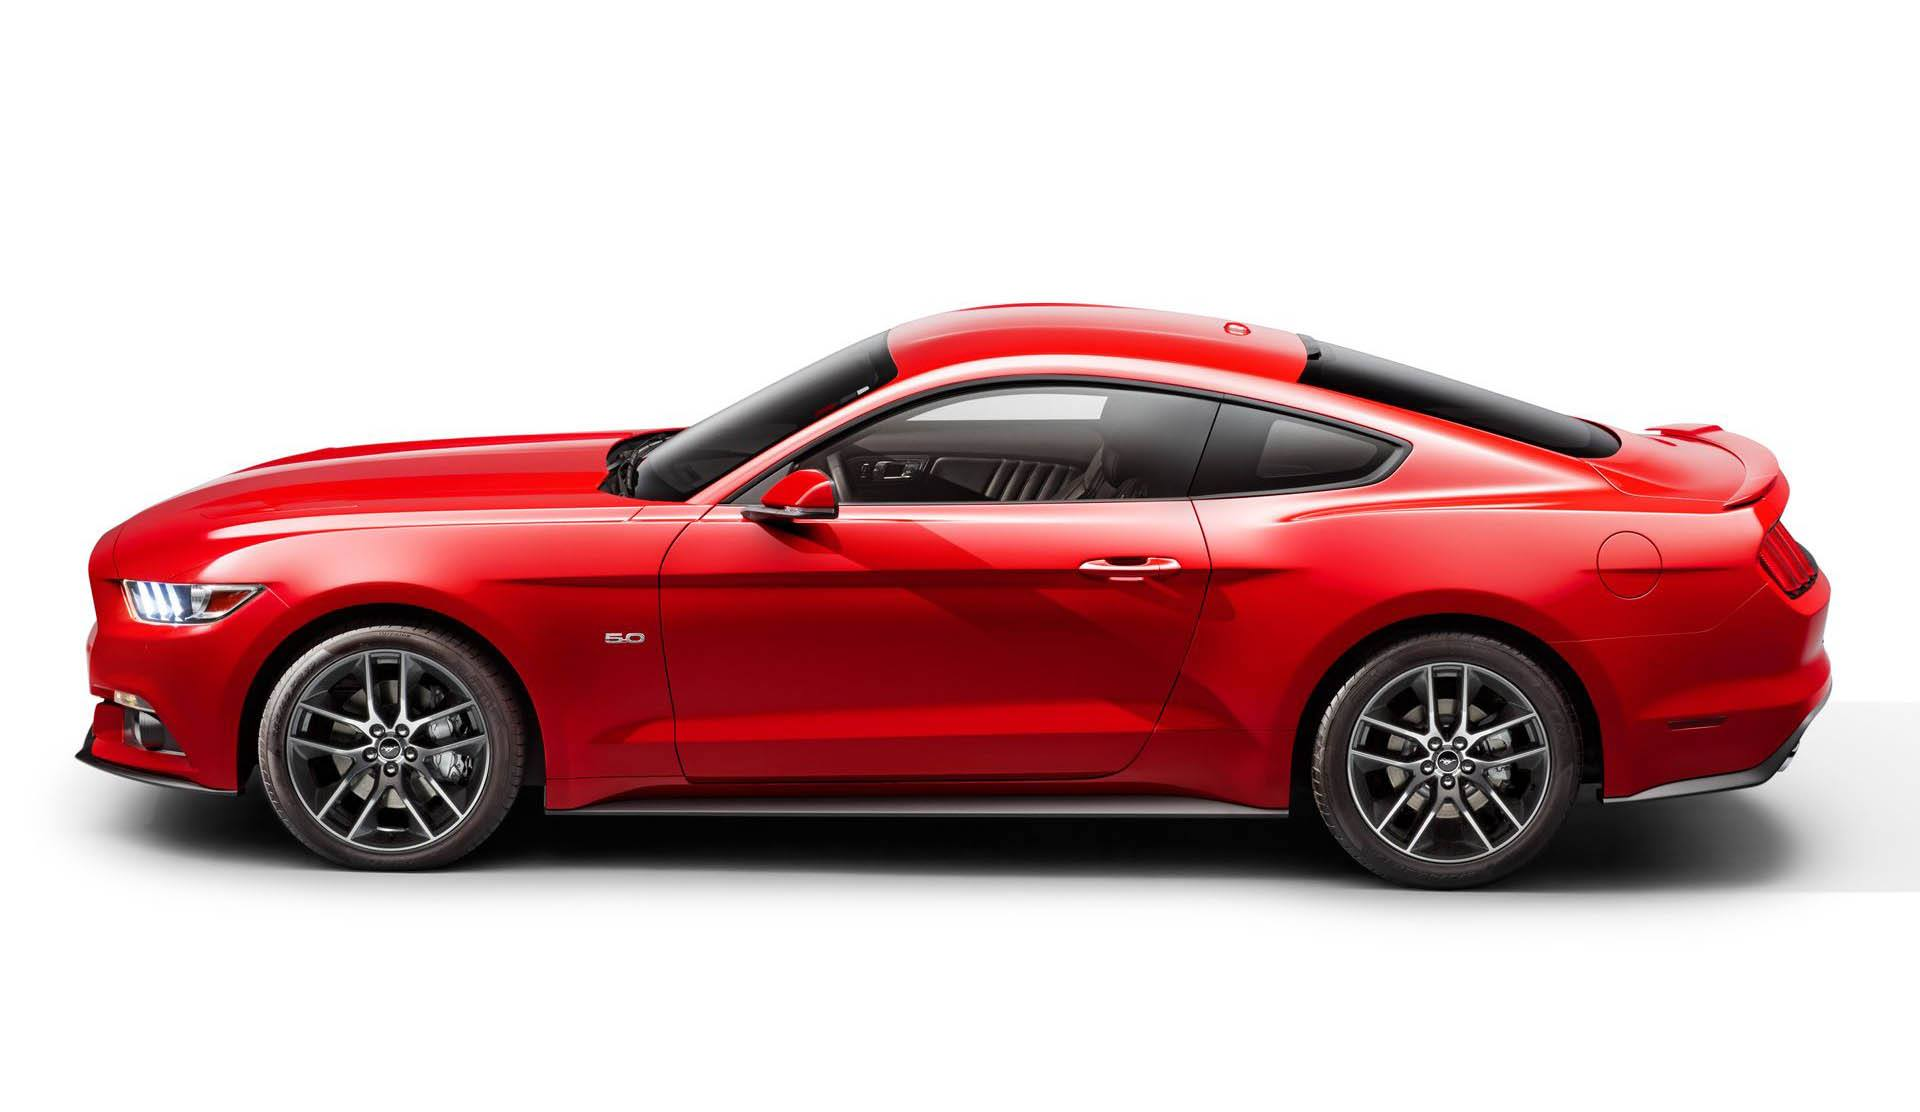 2015 Ford Mustang side view leaked press shot